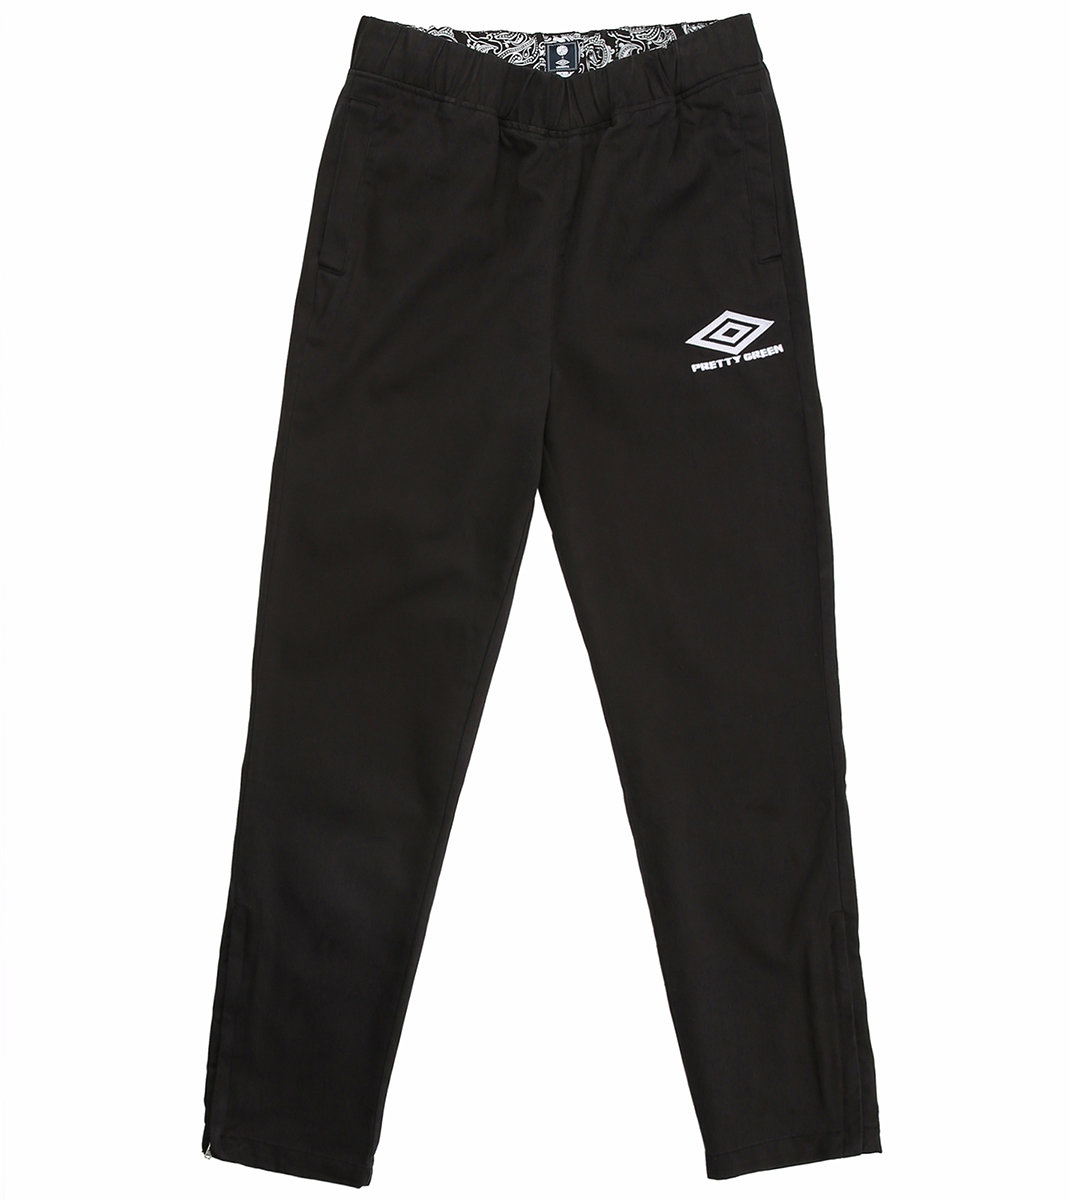 PRETTY GREEN DRILL PANT